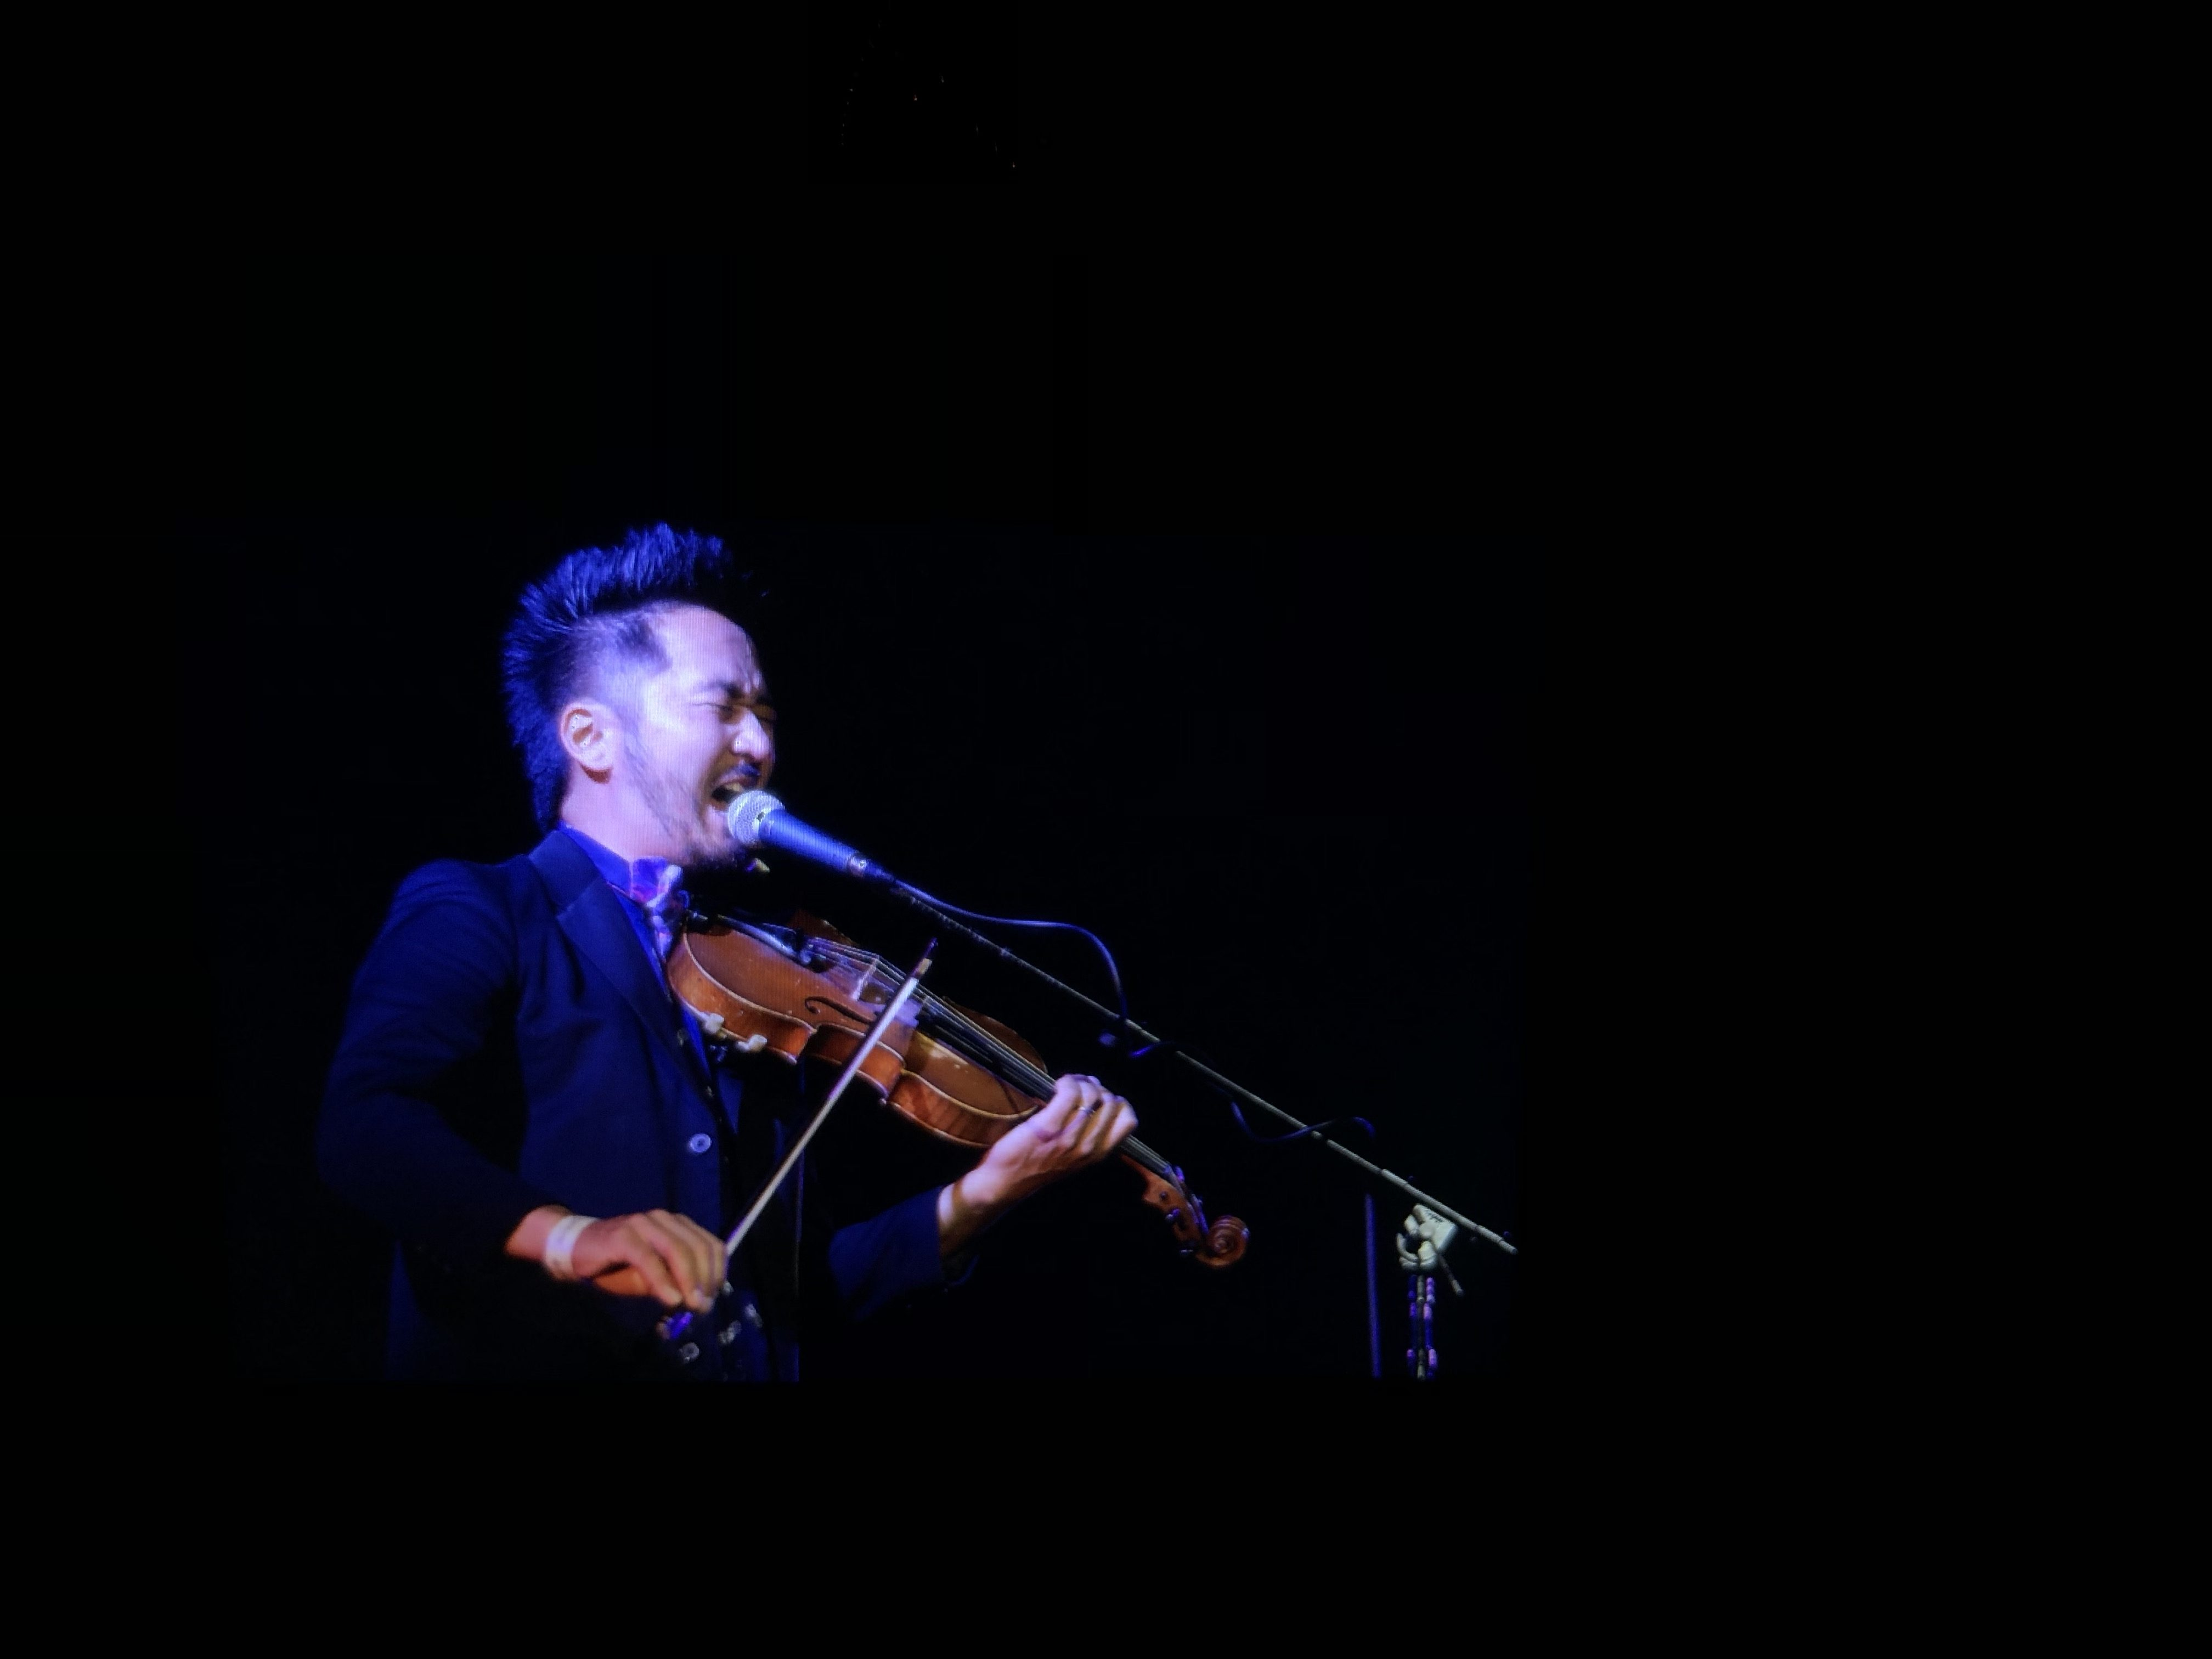 Kishi Bashi @ Skirball Cultural Center 8/23/18. Photo by Larry Sandez. Courtesy of the Skirball Culture Center. Used with permission.